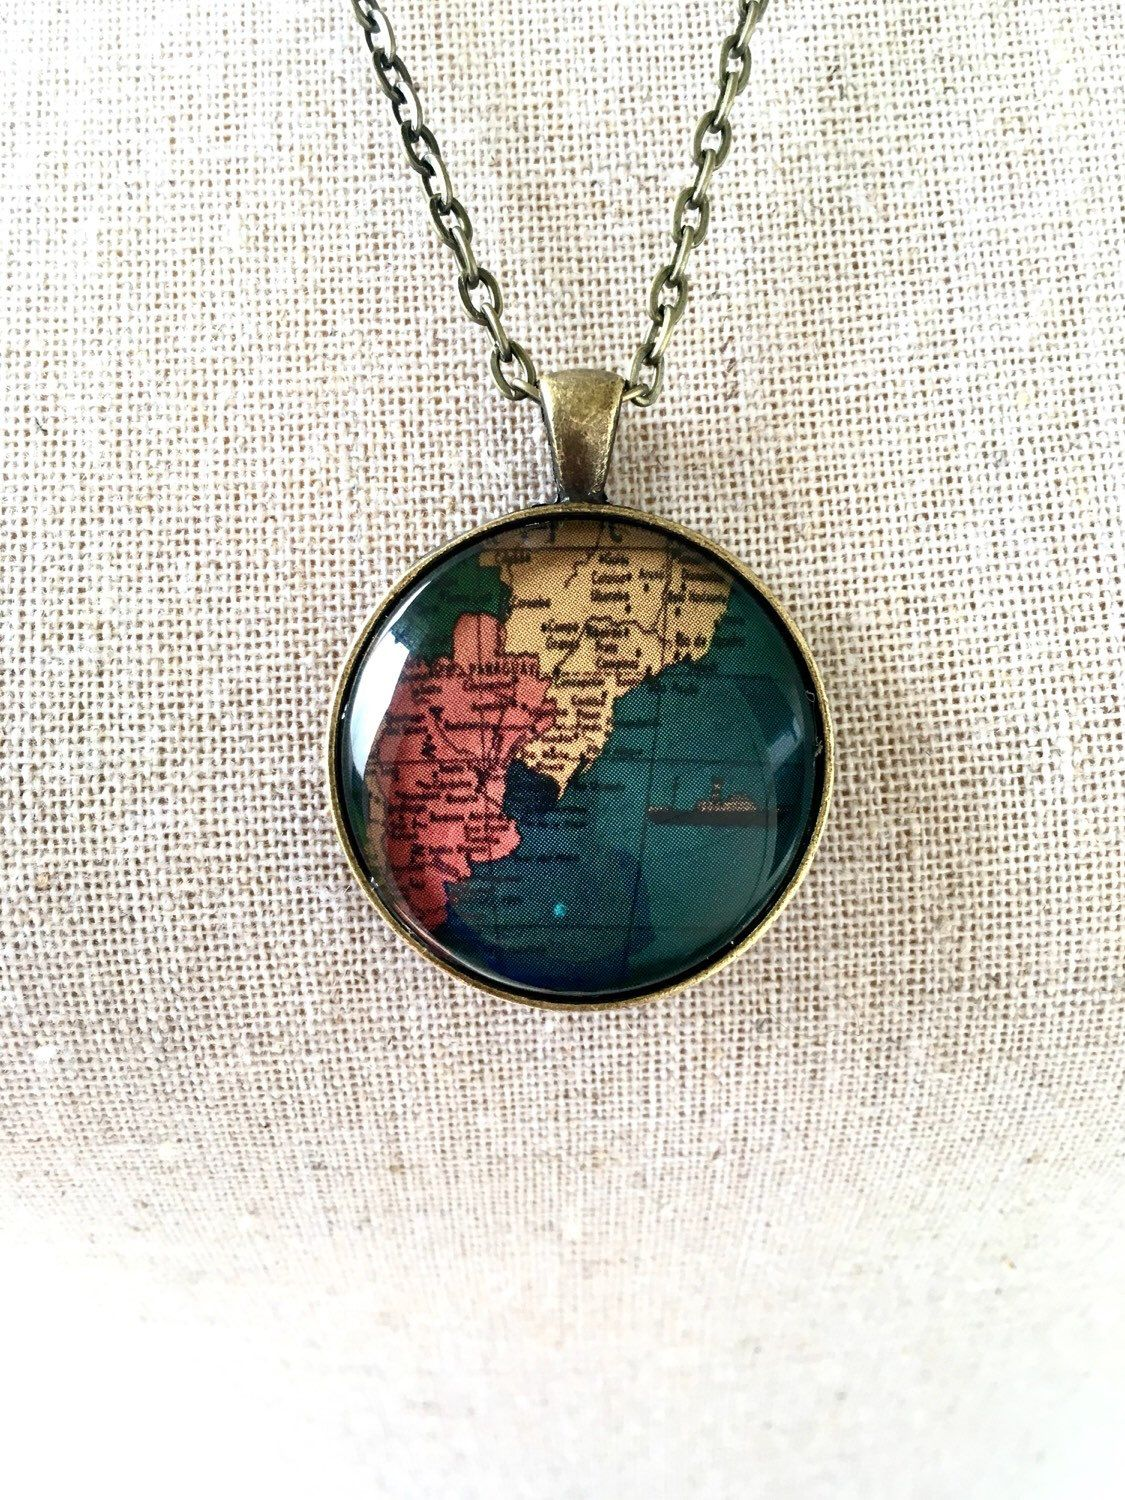 Chile Location On World Map%0A Globe Necklace South America Argentina Chile Uruguay Paraguay Travel World  Map Wanderlust Unique by IndustrialWhimsy on